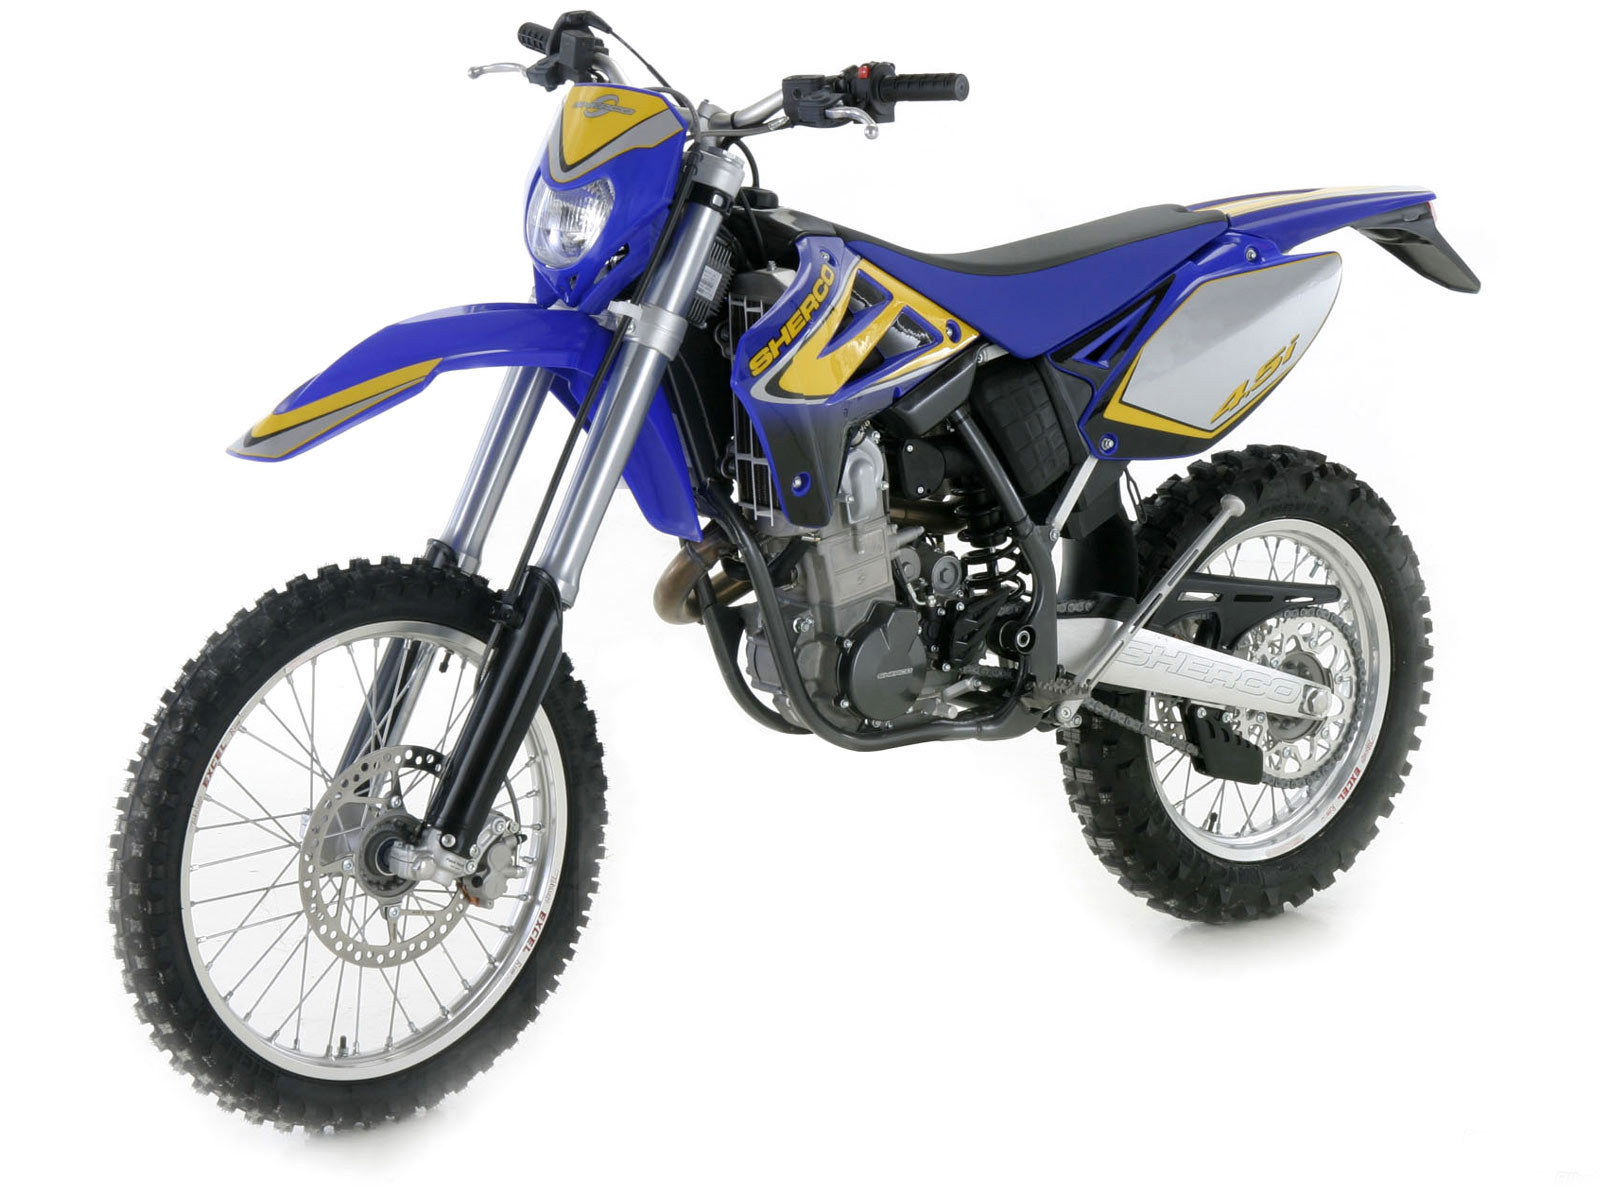 Sherco 125cc Enduro Shark Replica